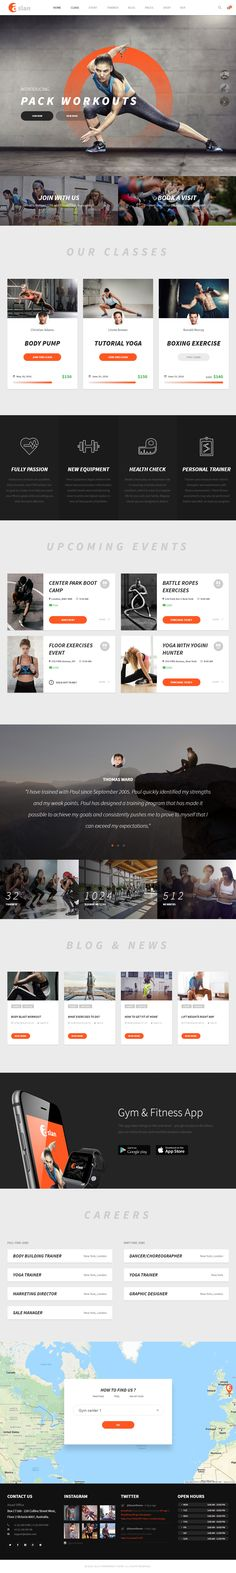 Aslan is Premium Responsive Retina #WordPress Theme. WooCommerce. If you like this #Fitness Theme visit our handpicked list of best #Sports Themes at: http://www.responsivemiracle.com/best-wordpress-sports-theme/